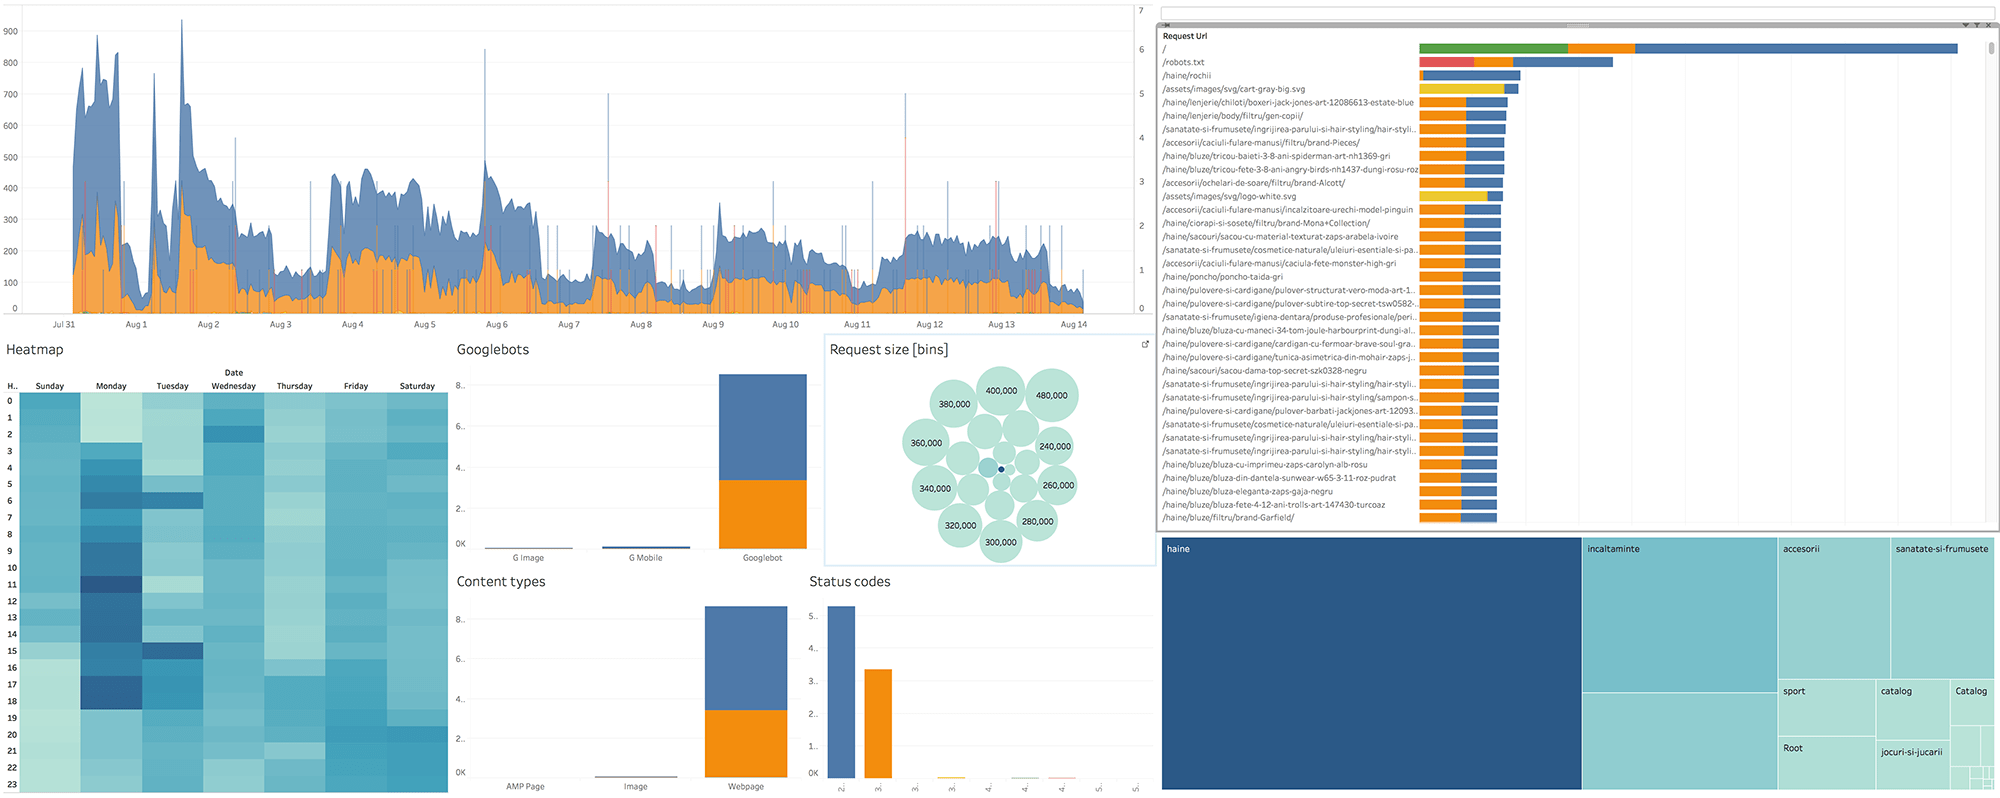 Log Analysis Dashboard